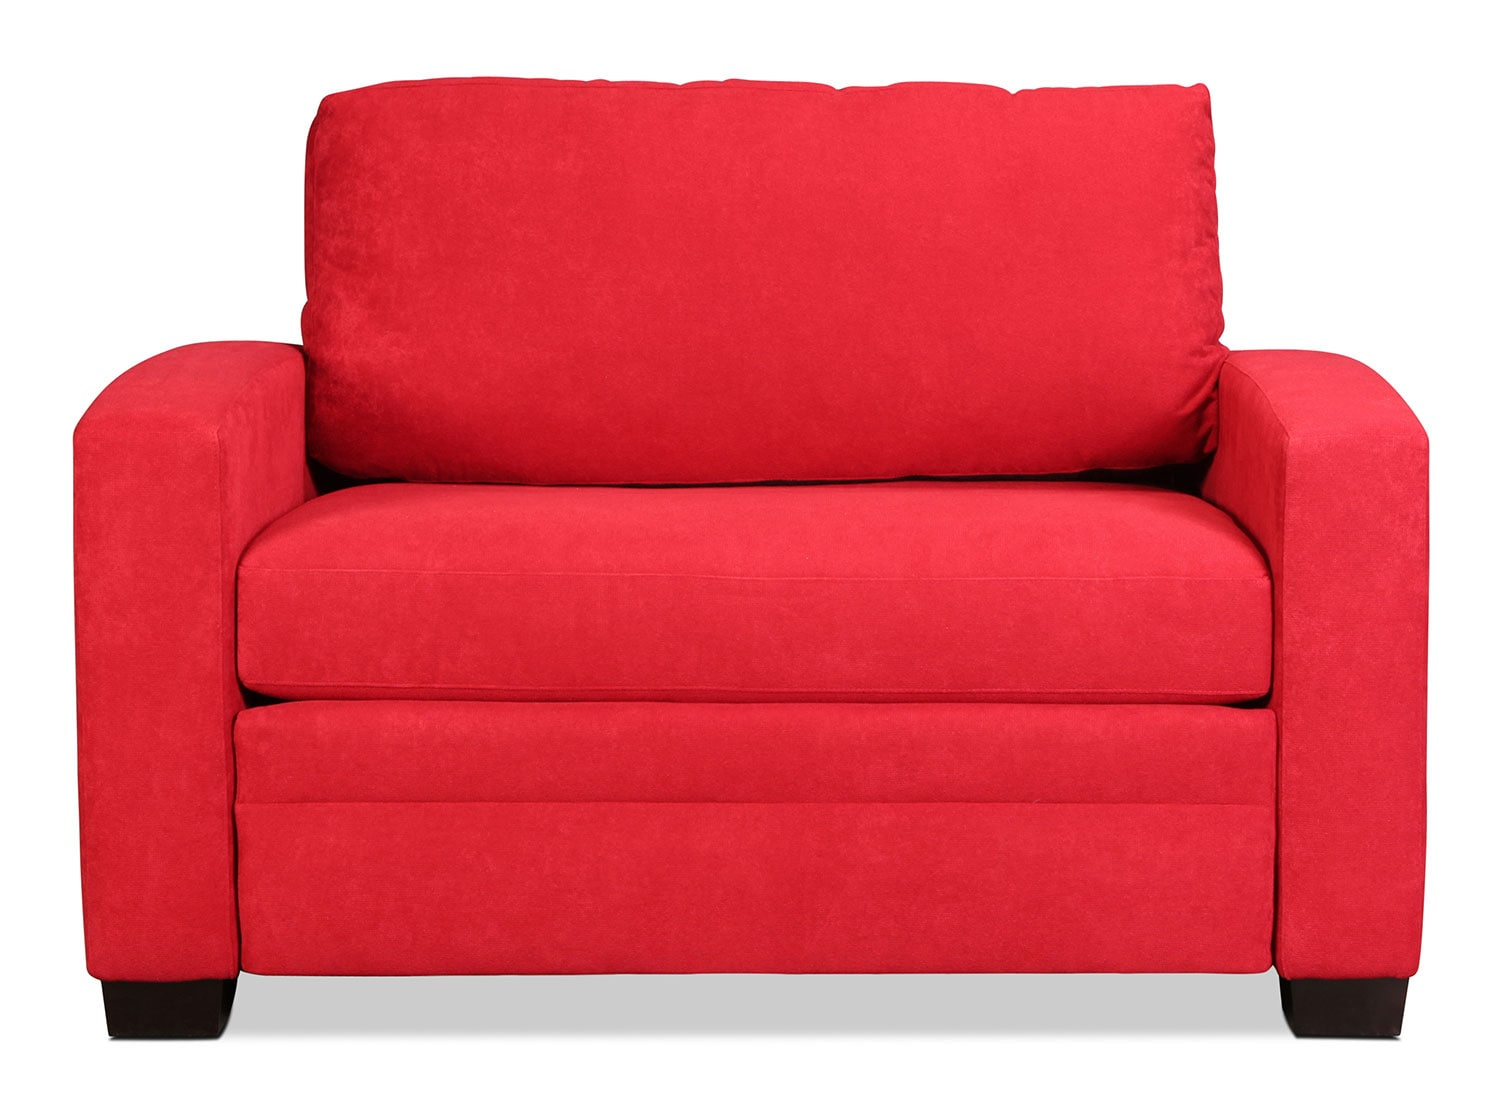 Levin Signature Twin Sleeper Chair - Chili Red